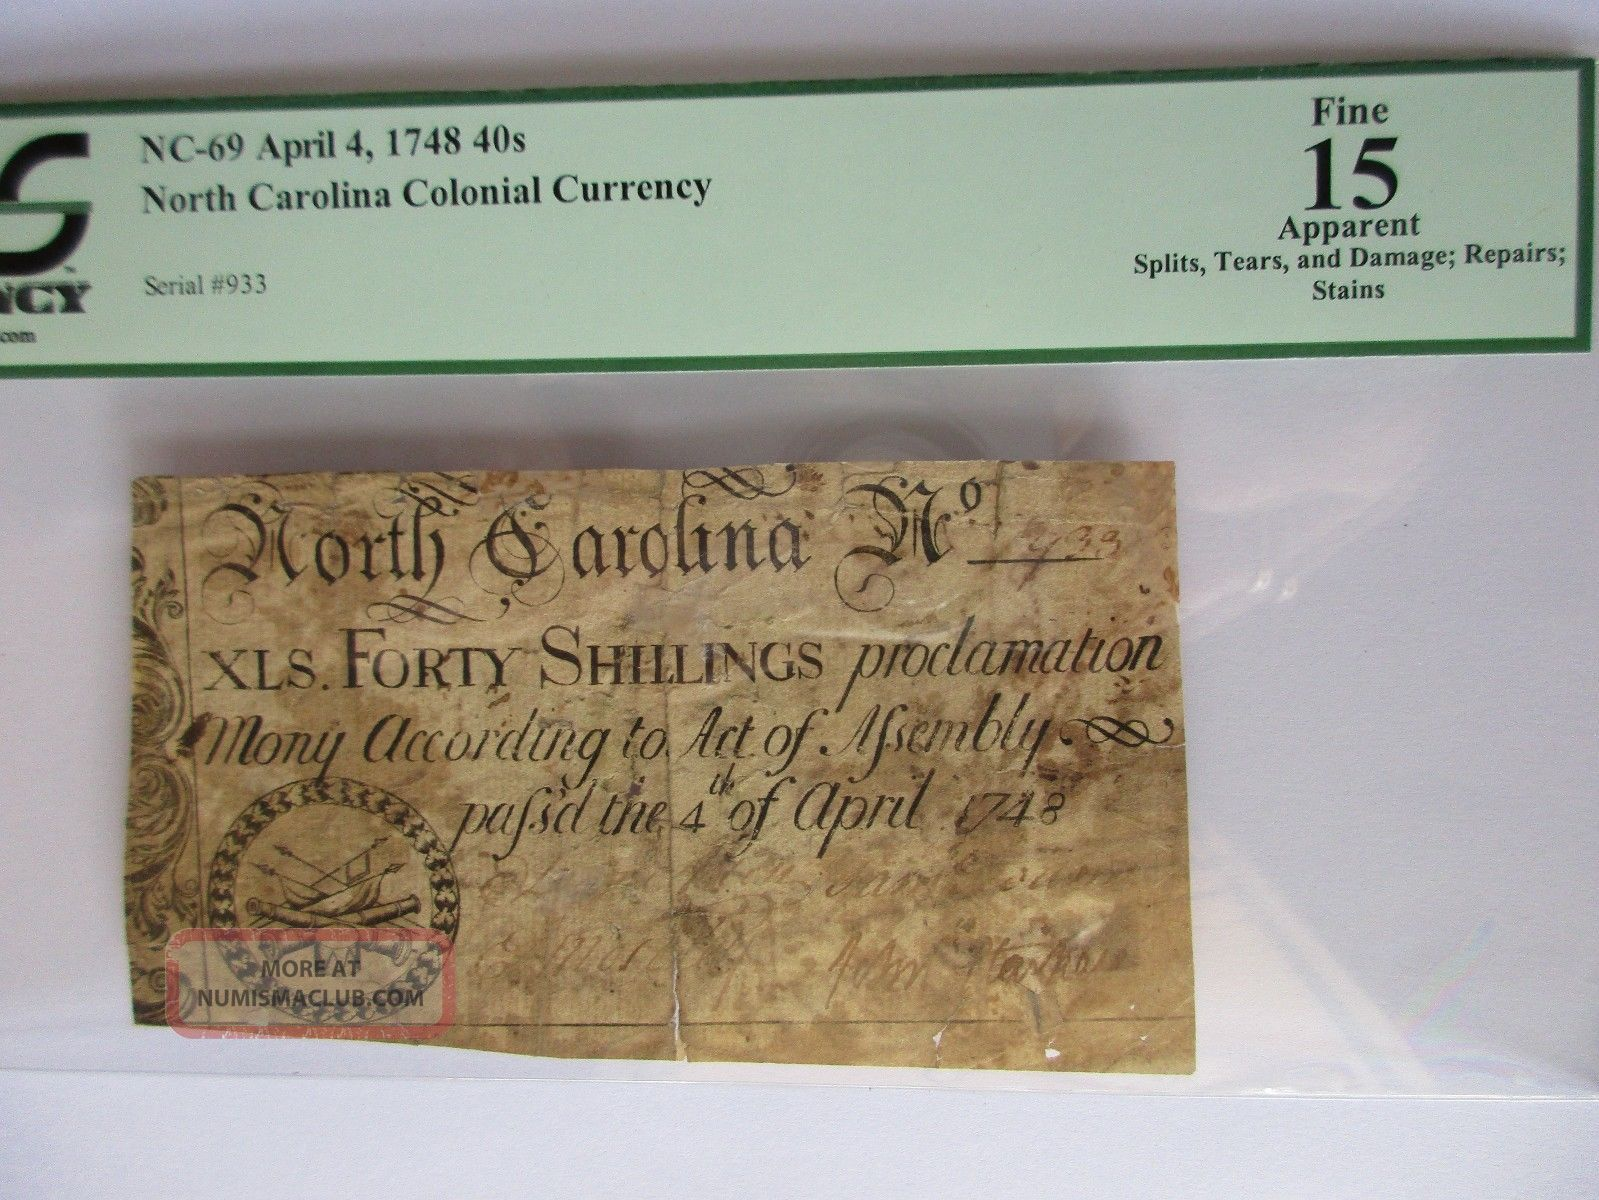 No.  Carolina Colonial Currency 1748.  40s,  Nc - 69,  Pcgs Fine 15 Apparent Paper Money: US photo